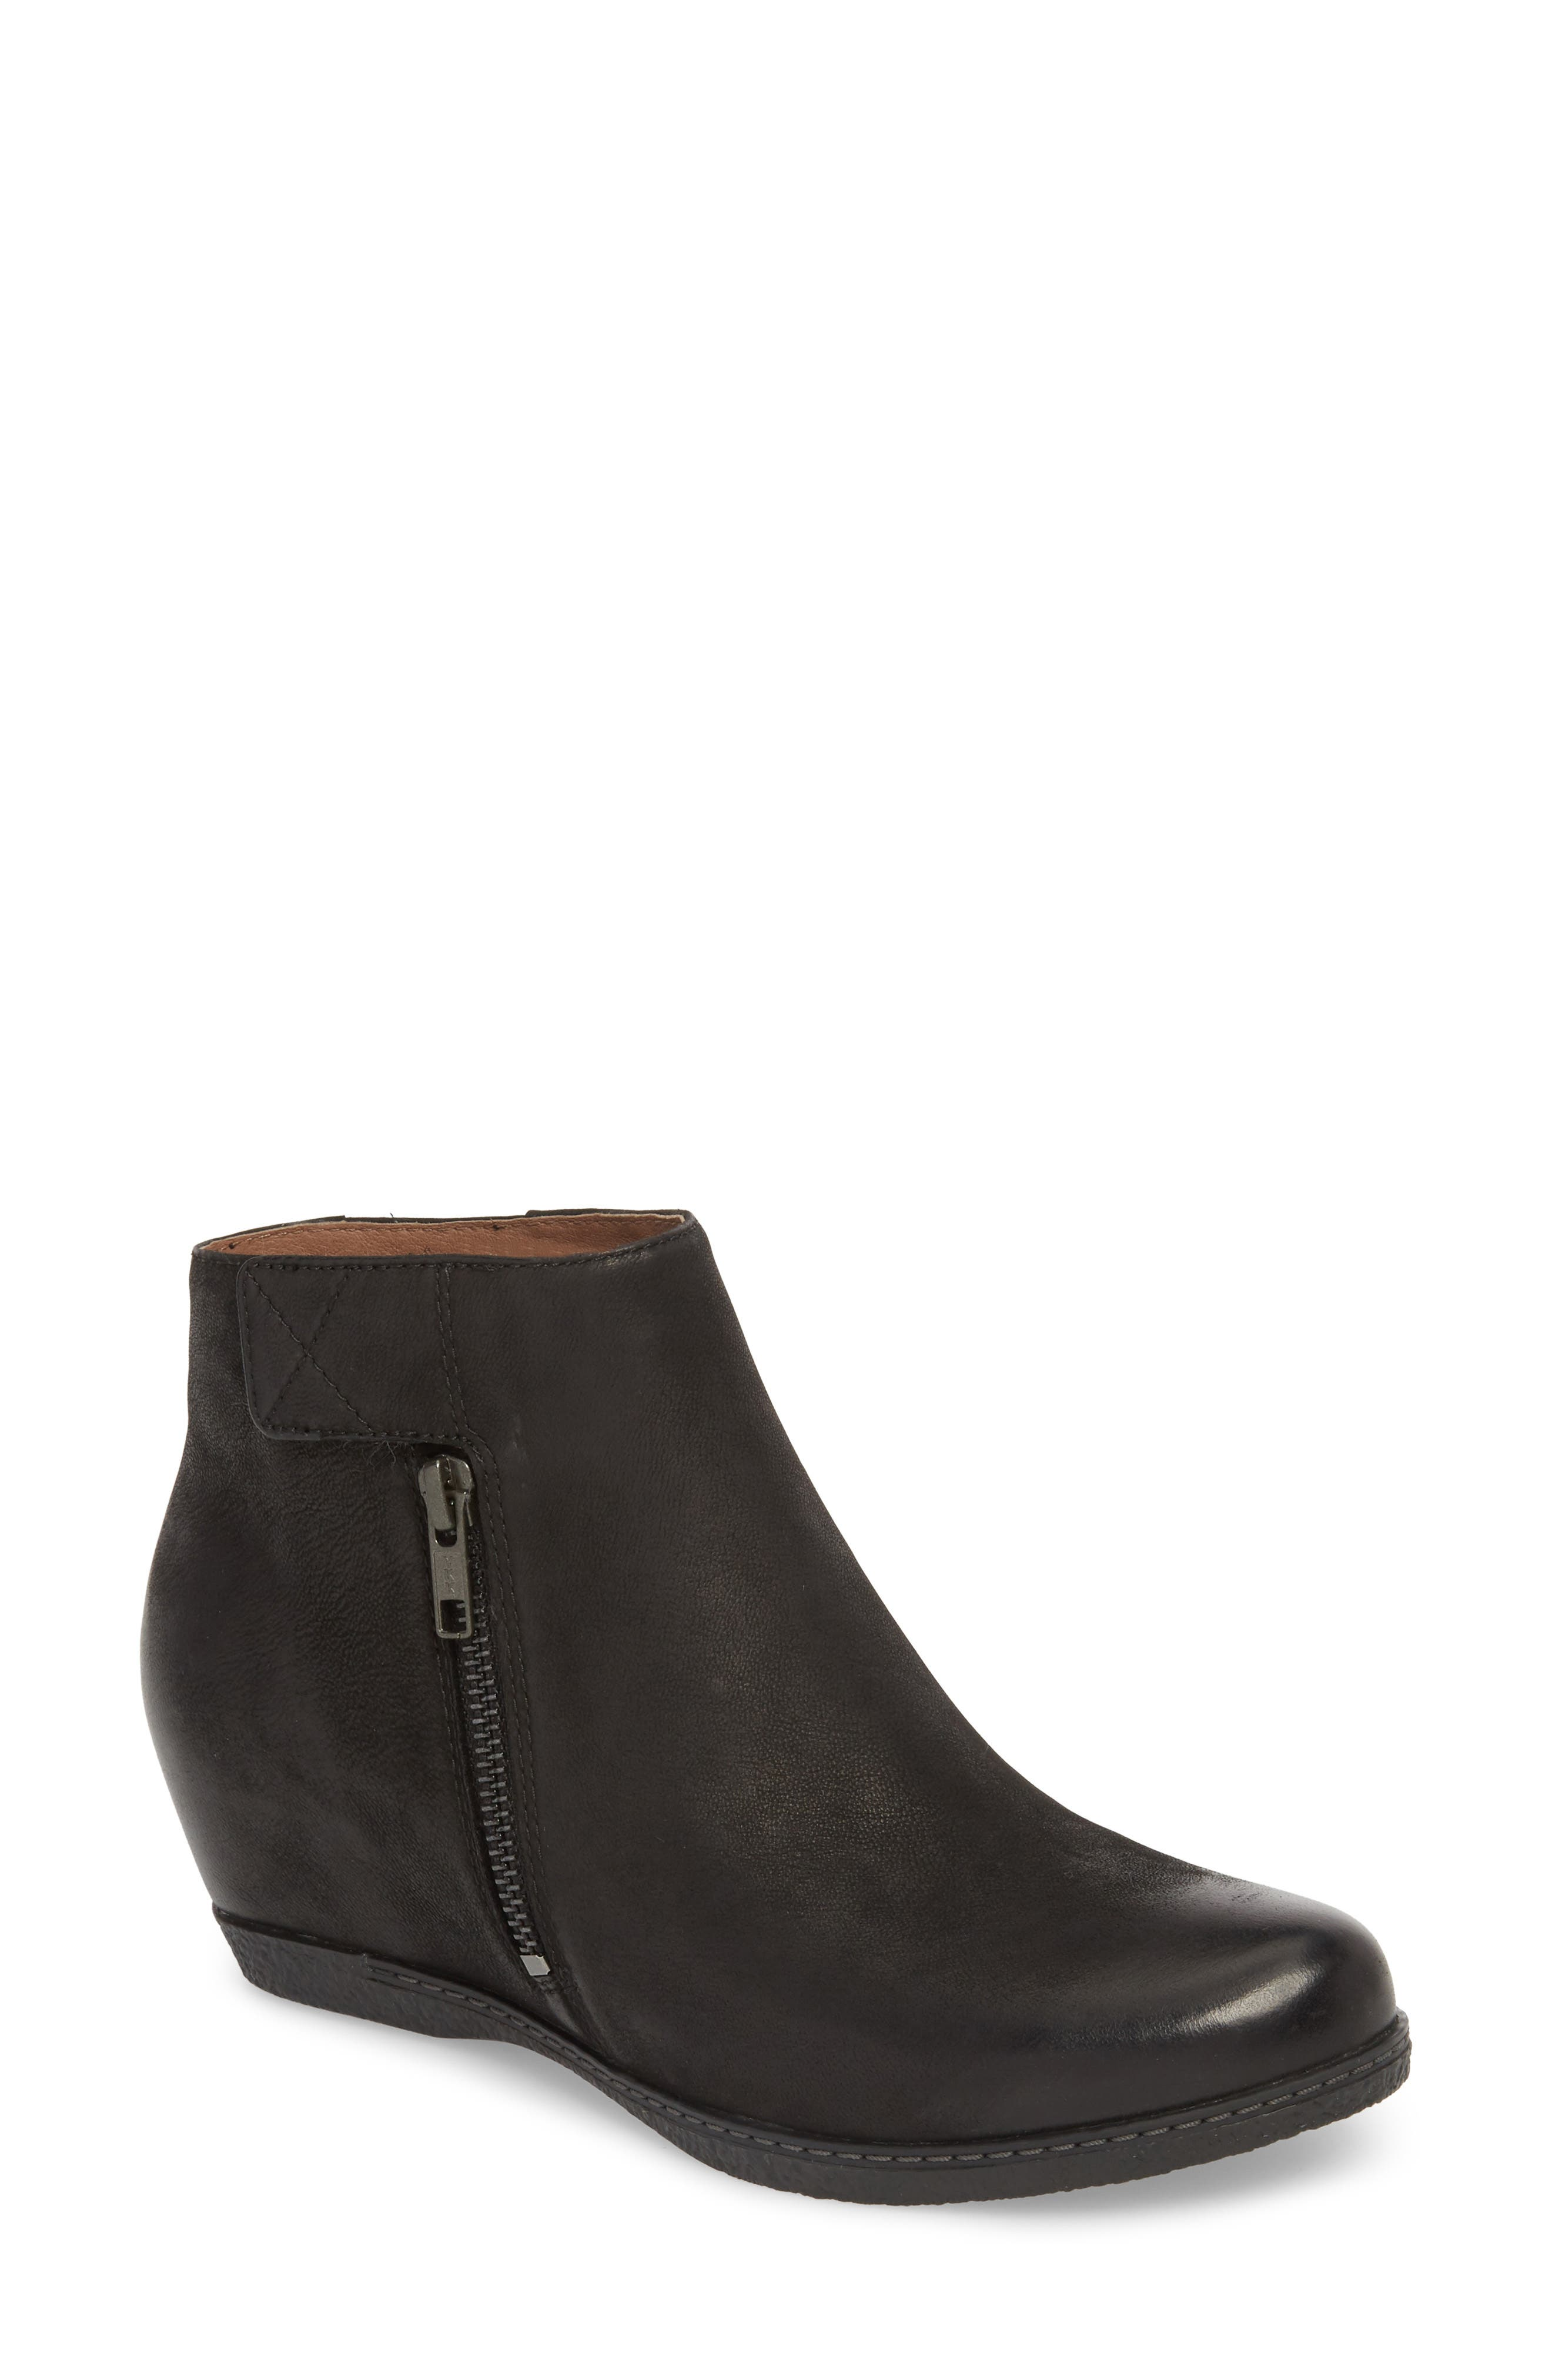 Leanna Bootie,                         Main,                         color, 001